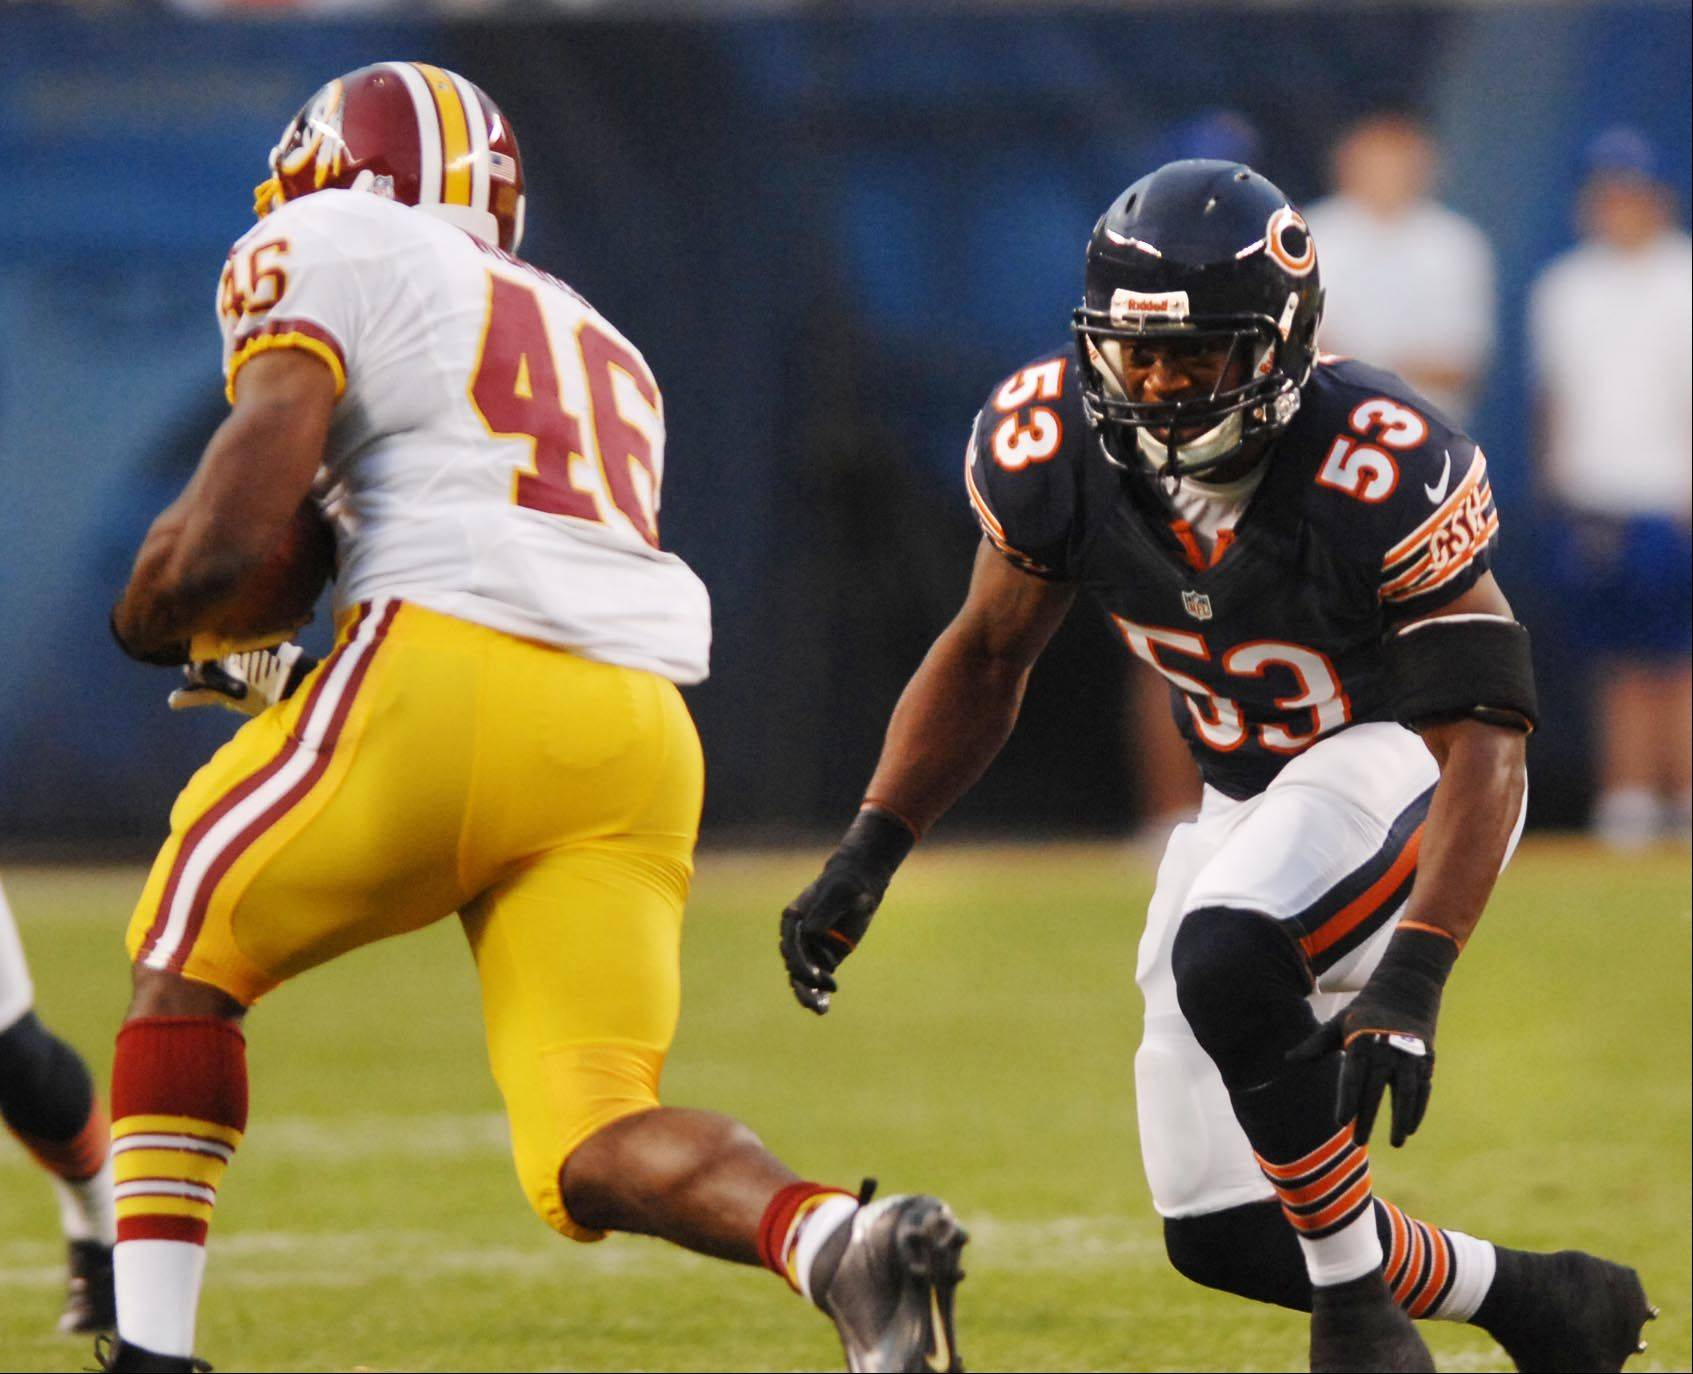 Chicago Bears linebacker Nick Roach lines up Washington Redskins running back Alfred Morris for a tackle Saturday in the second preseason game at Soldier Field in Chicago.